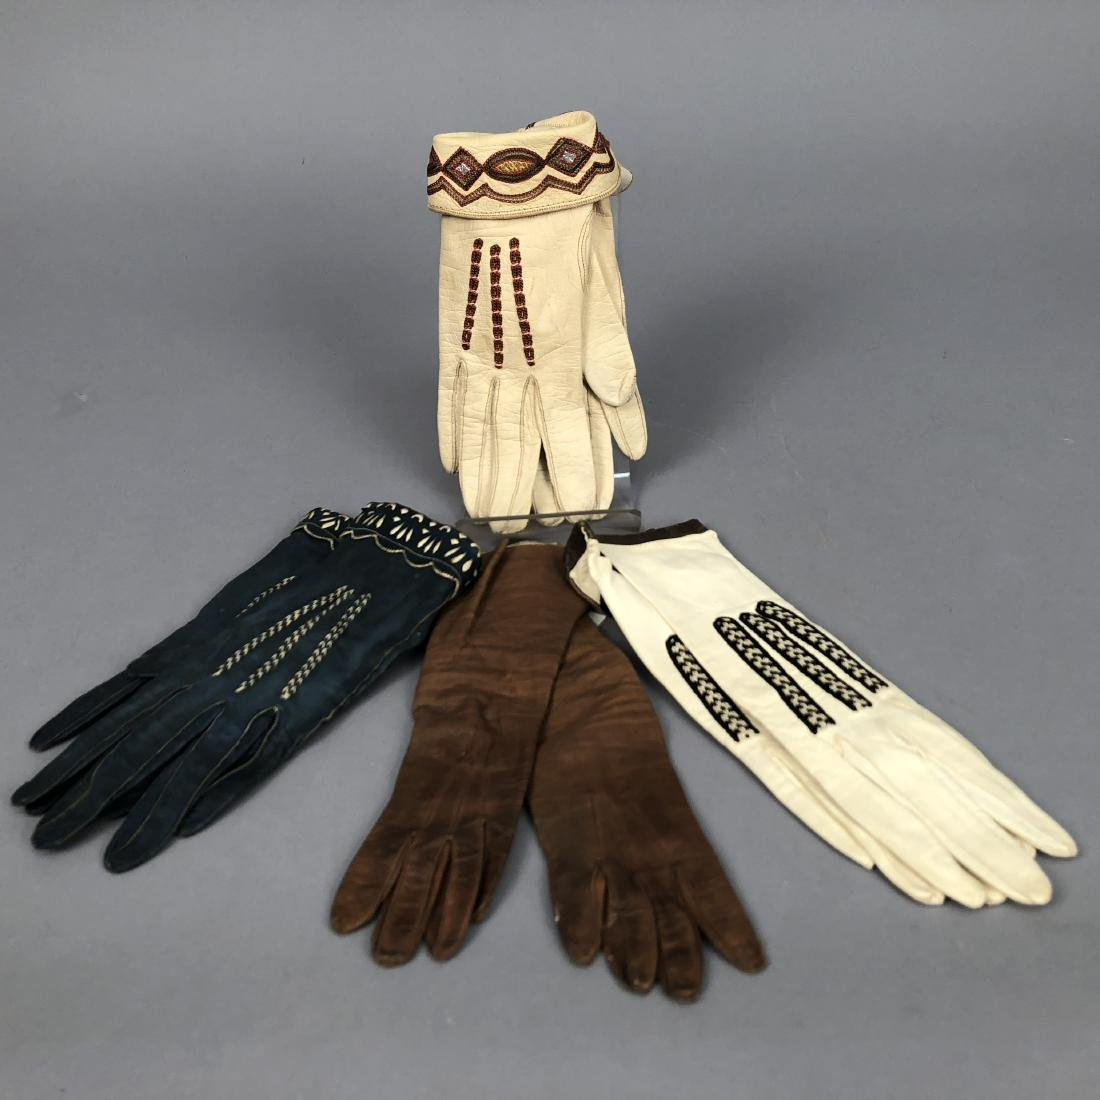 THREE PAIR DECORATED LEATHER GLOVES, c. 1920